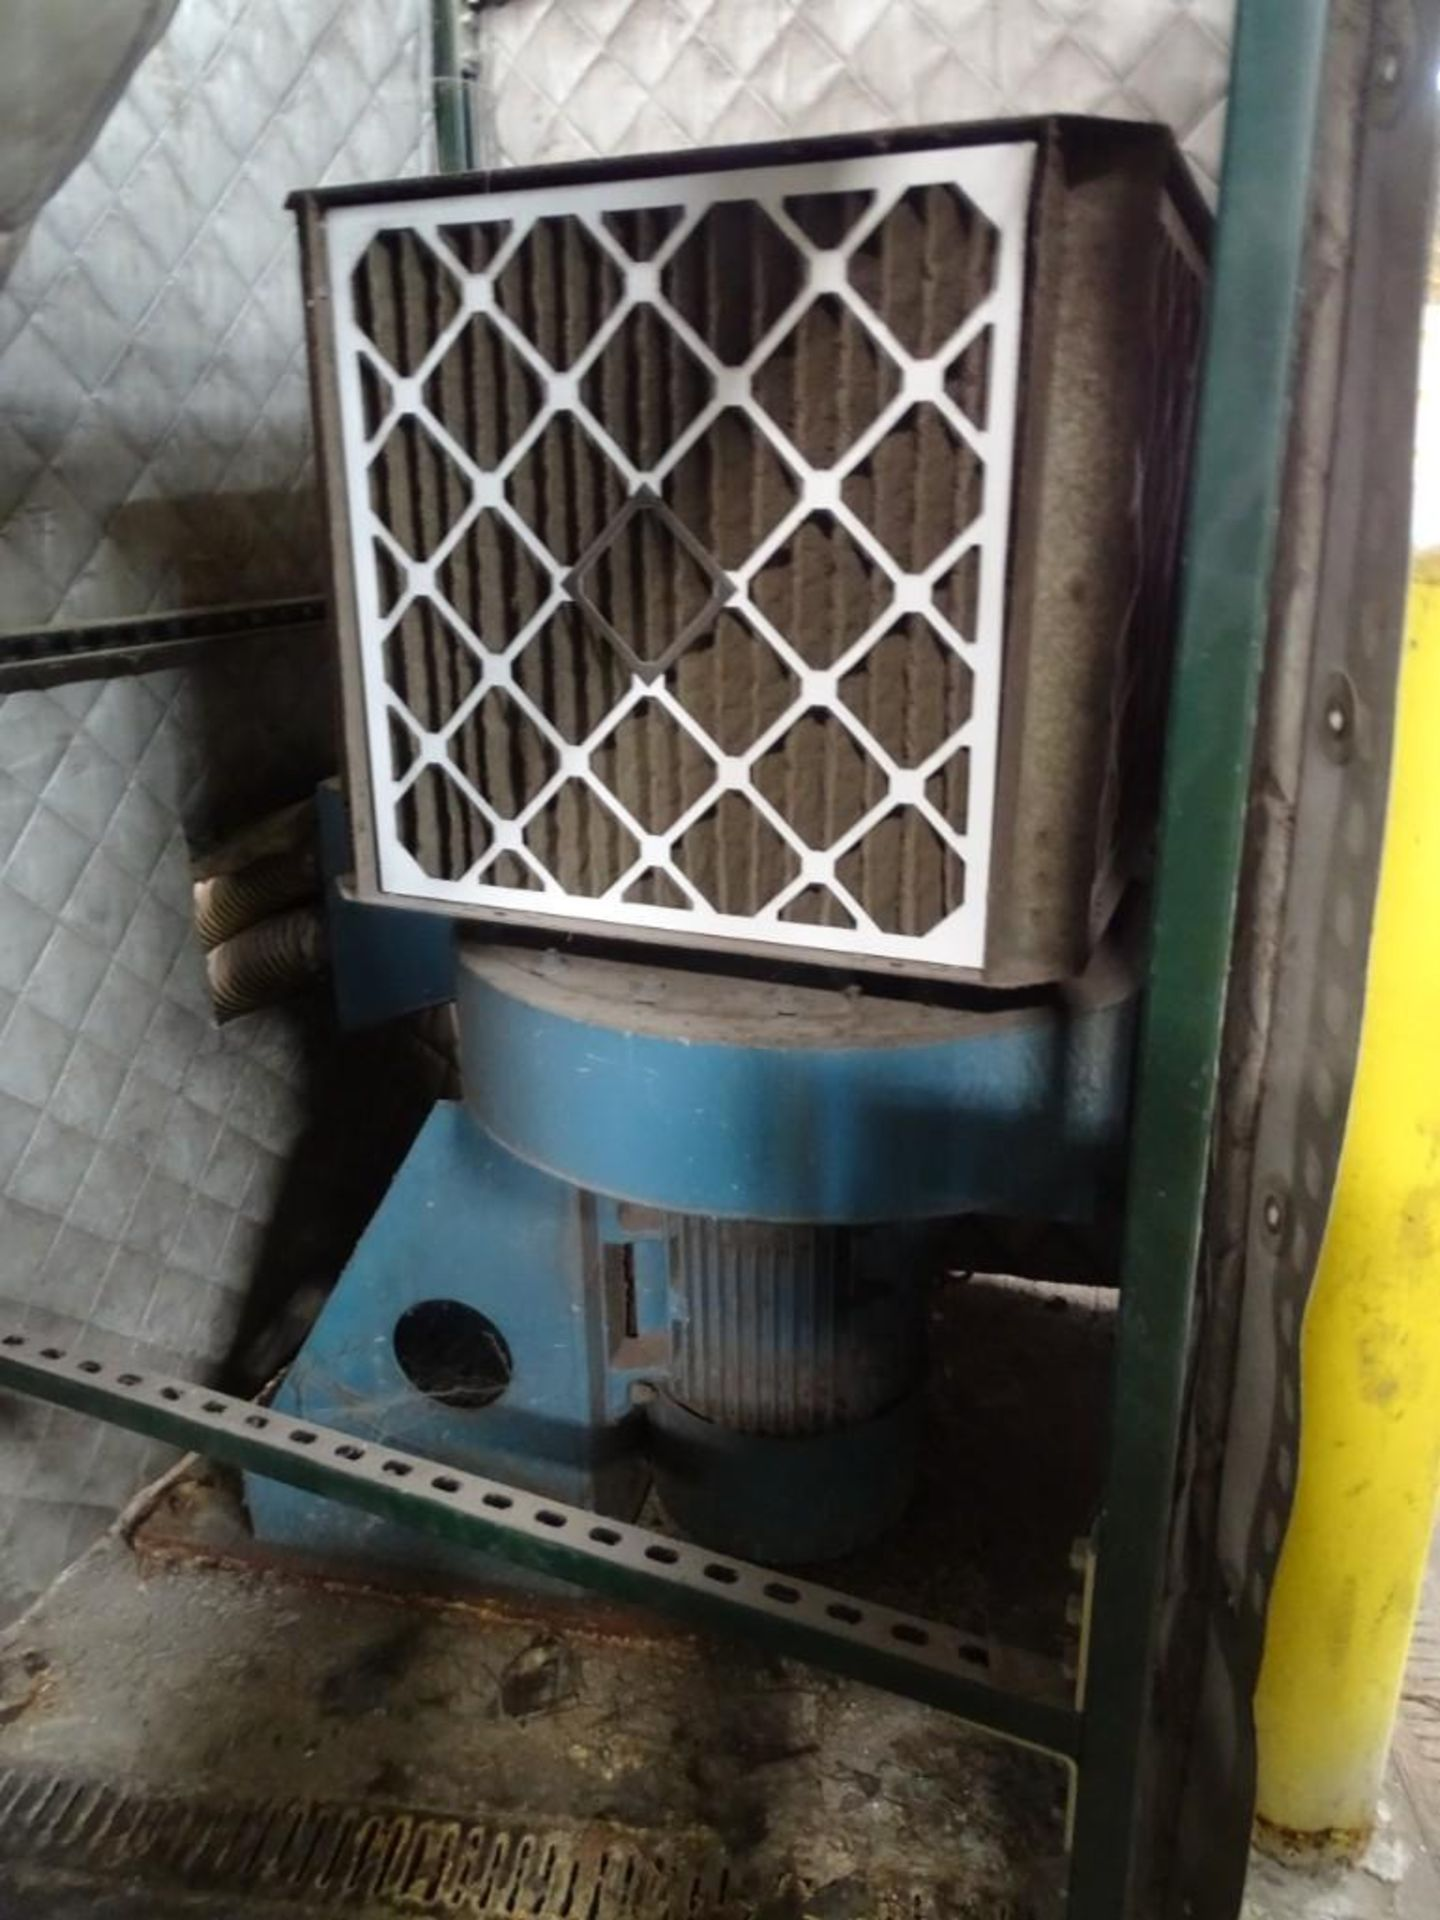 30HP Blower and Filter with Shroud - Image 2 of 3